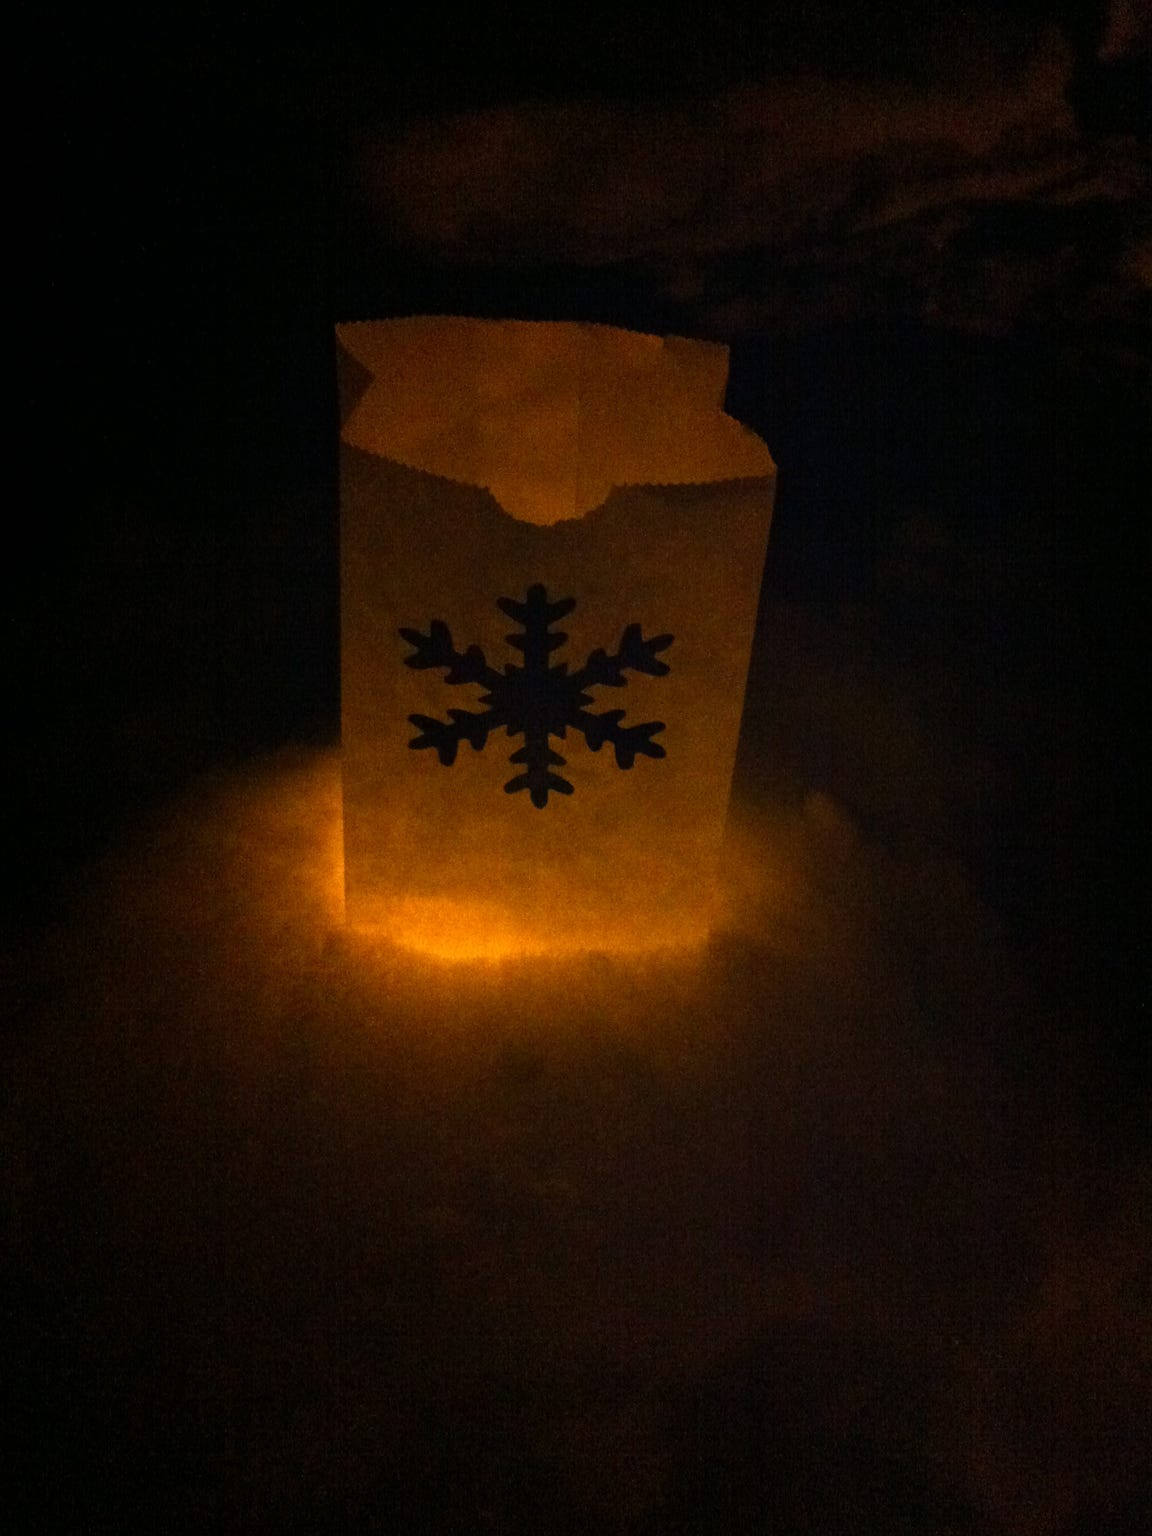 Luminaries will light the path for the snowshoe hikes at the Monk Gardens in Wausau.